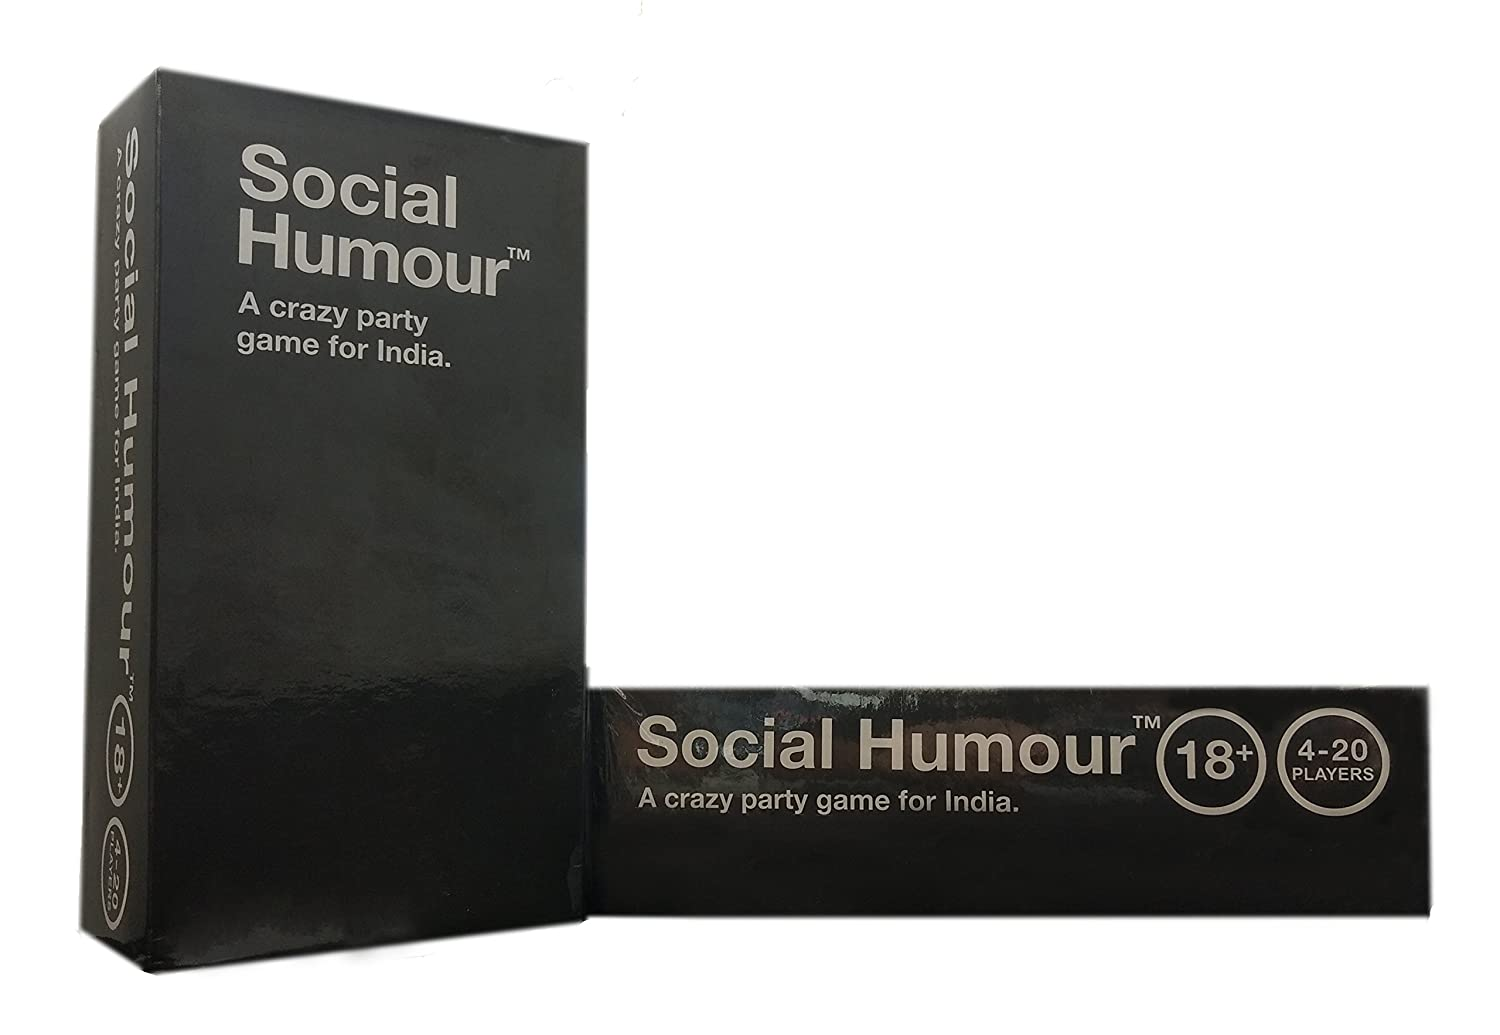 Social Humour:Crazy party game